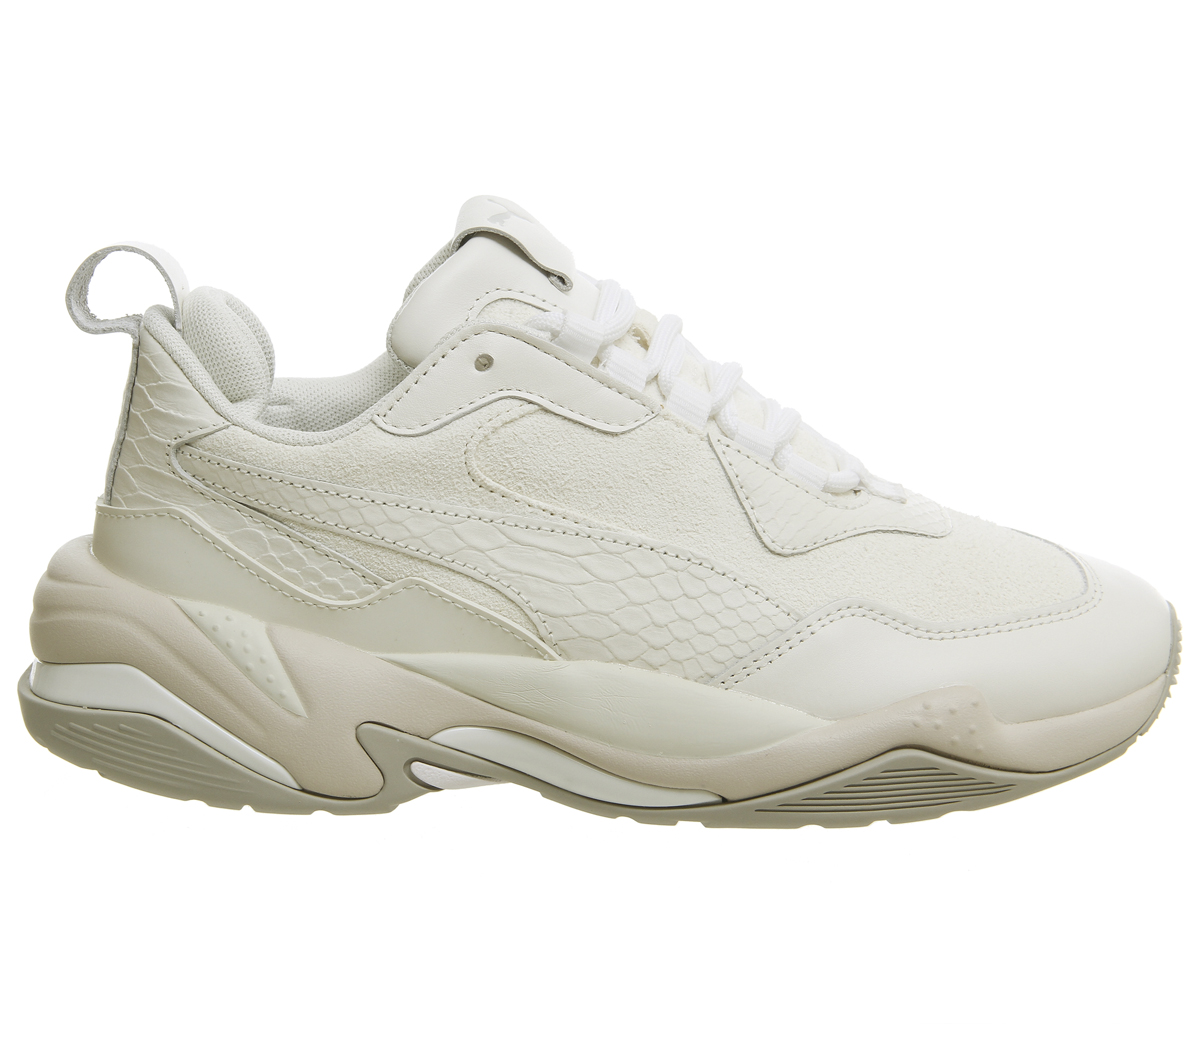 9f8f72ea8f3 Puma Thunder désert Baskets Bright White Star Gris Violet Baskets ...